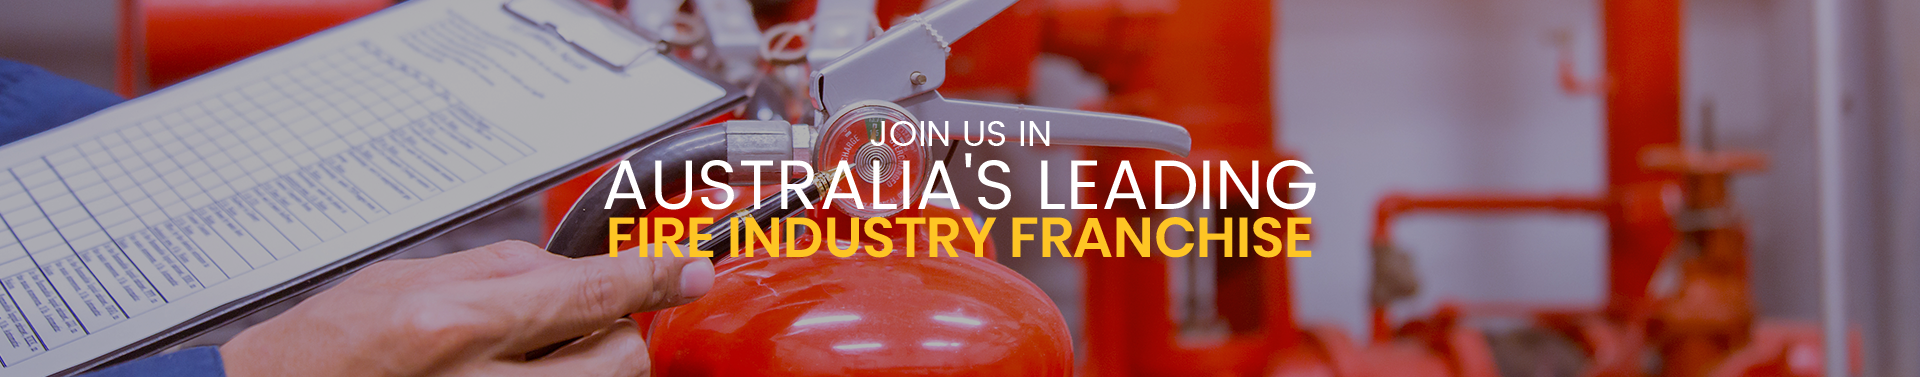 FCF Franchise | Australia's leading fire industry franchise